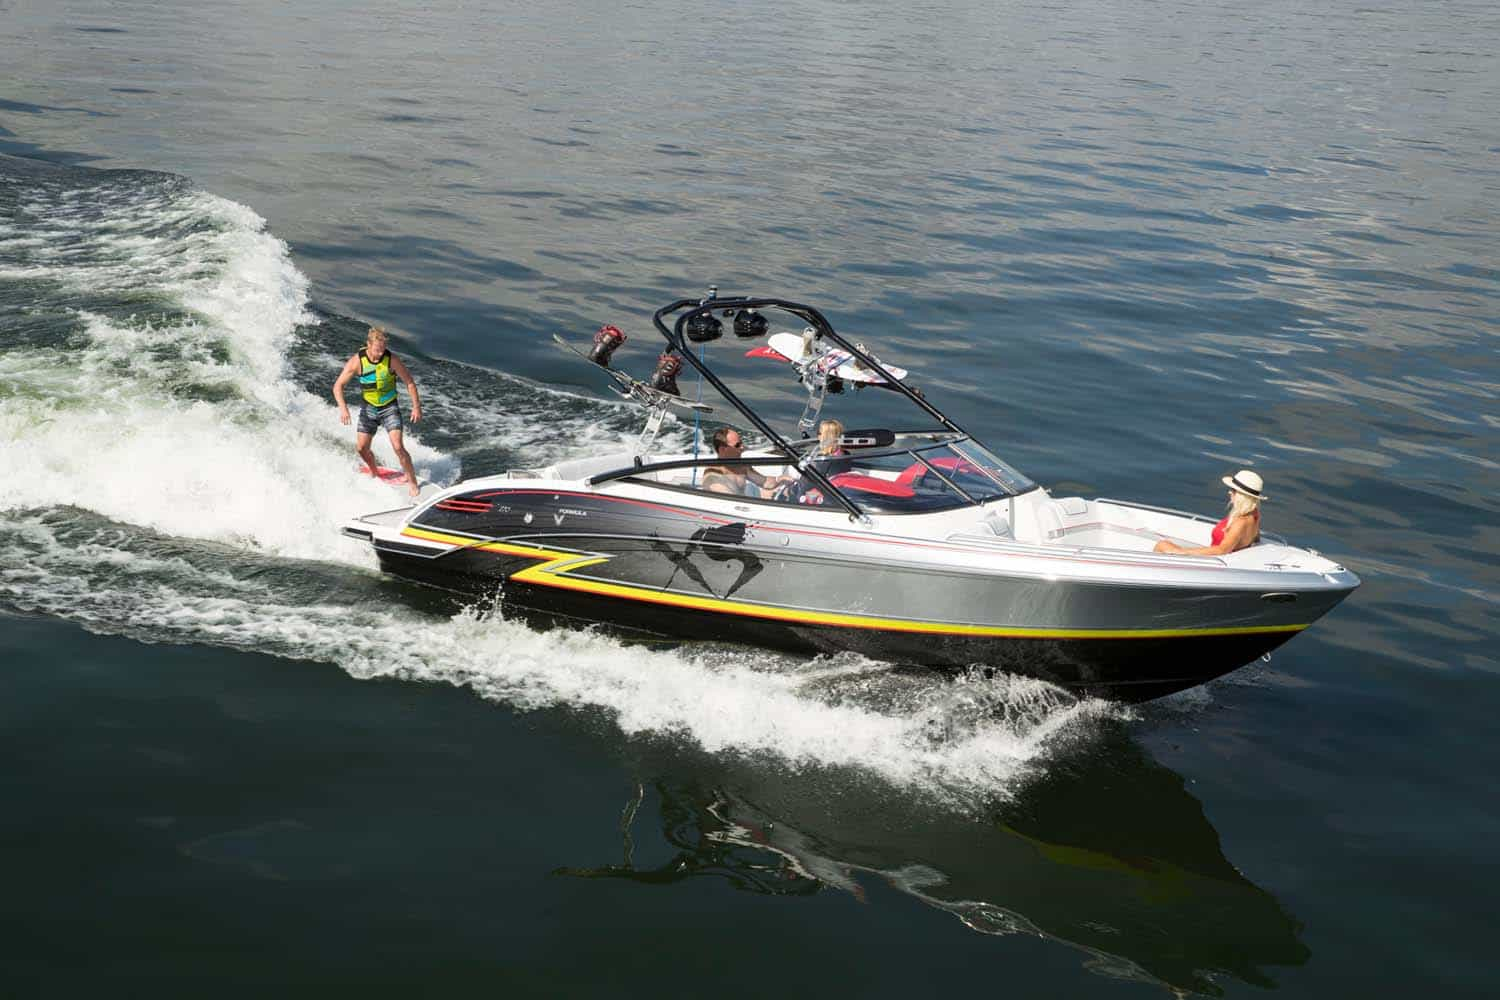 An image of the 270 Xtreme Sport boat on the ocean for better understanding of the model visually. Shows a smaller boat with the letters XS painted in black on the side of the boat. A man is wake boarding behind the boat while three other people sit in the boat.